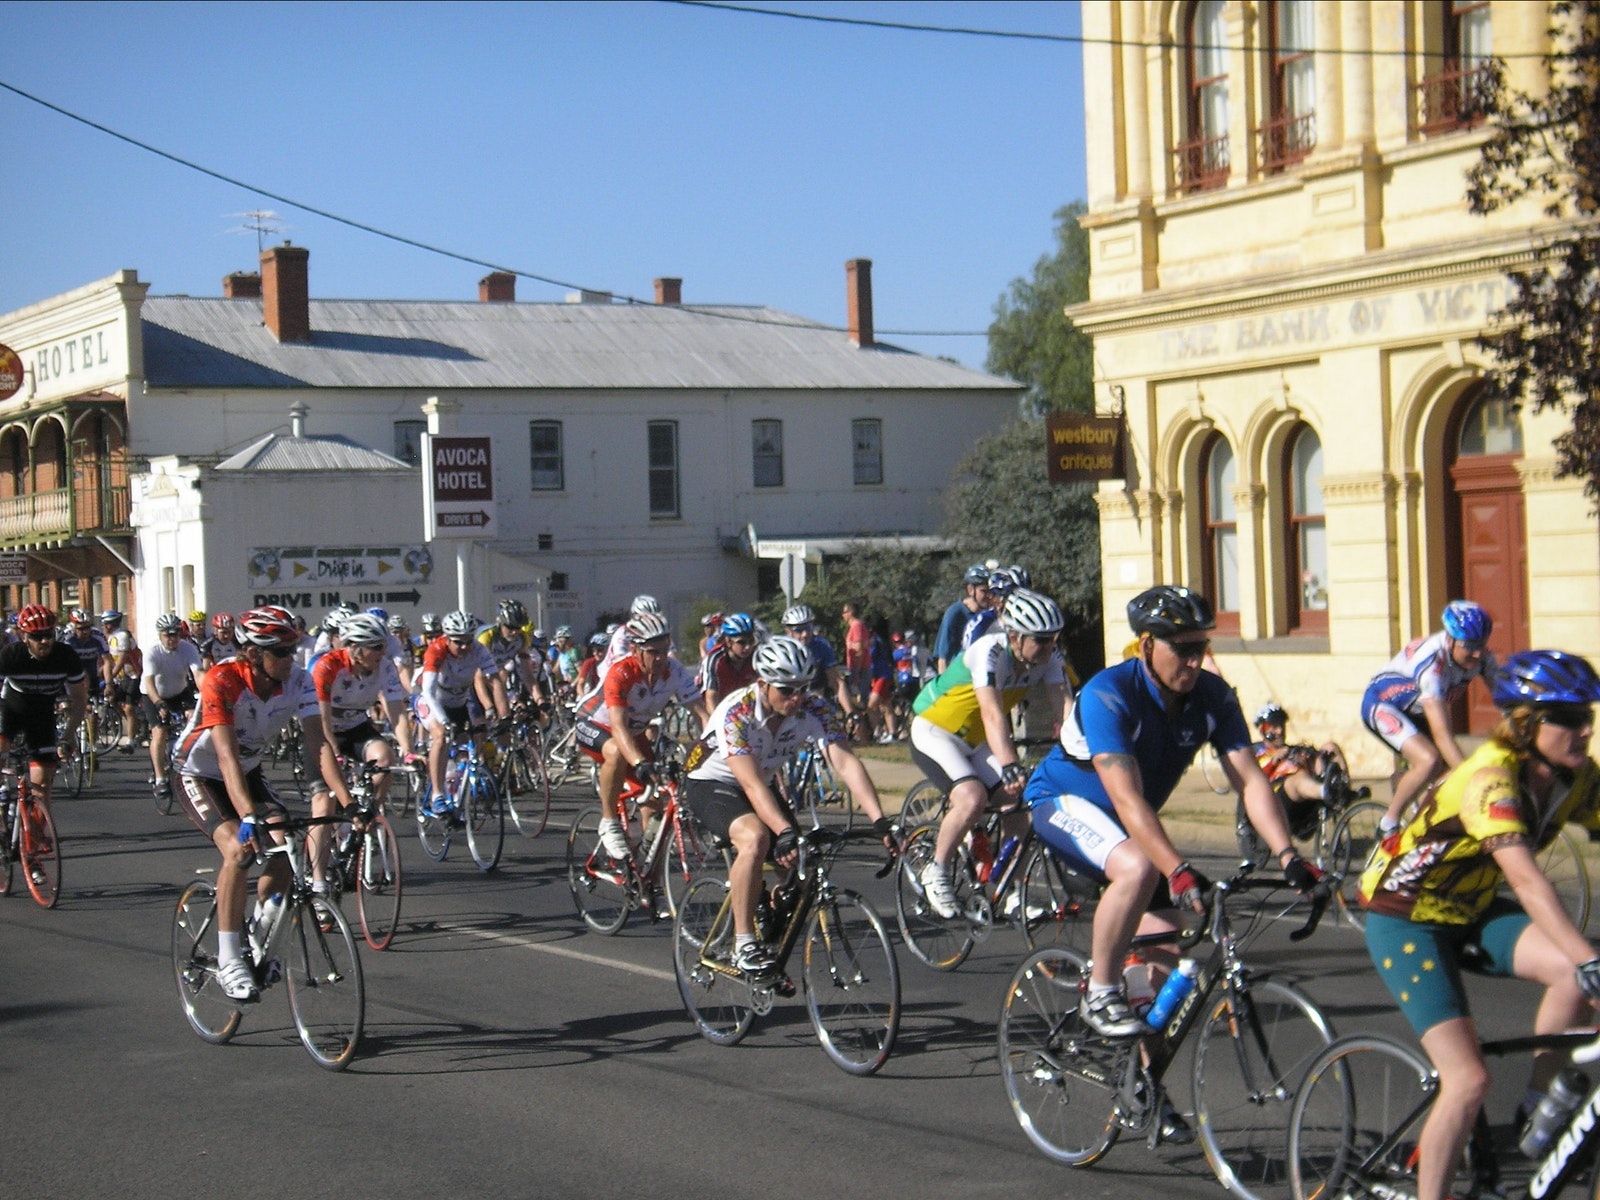 Riders cycling through Avoca.